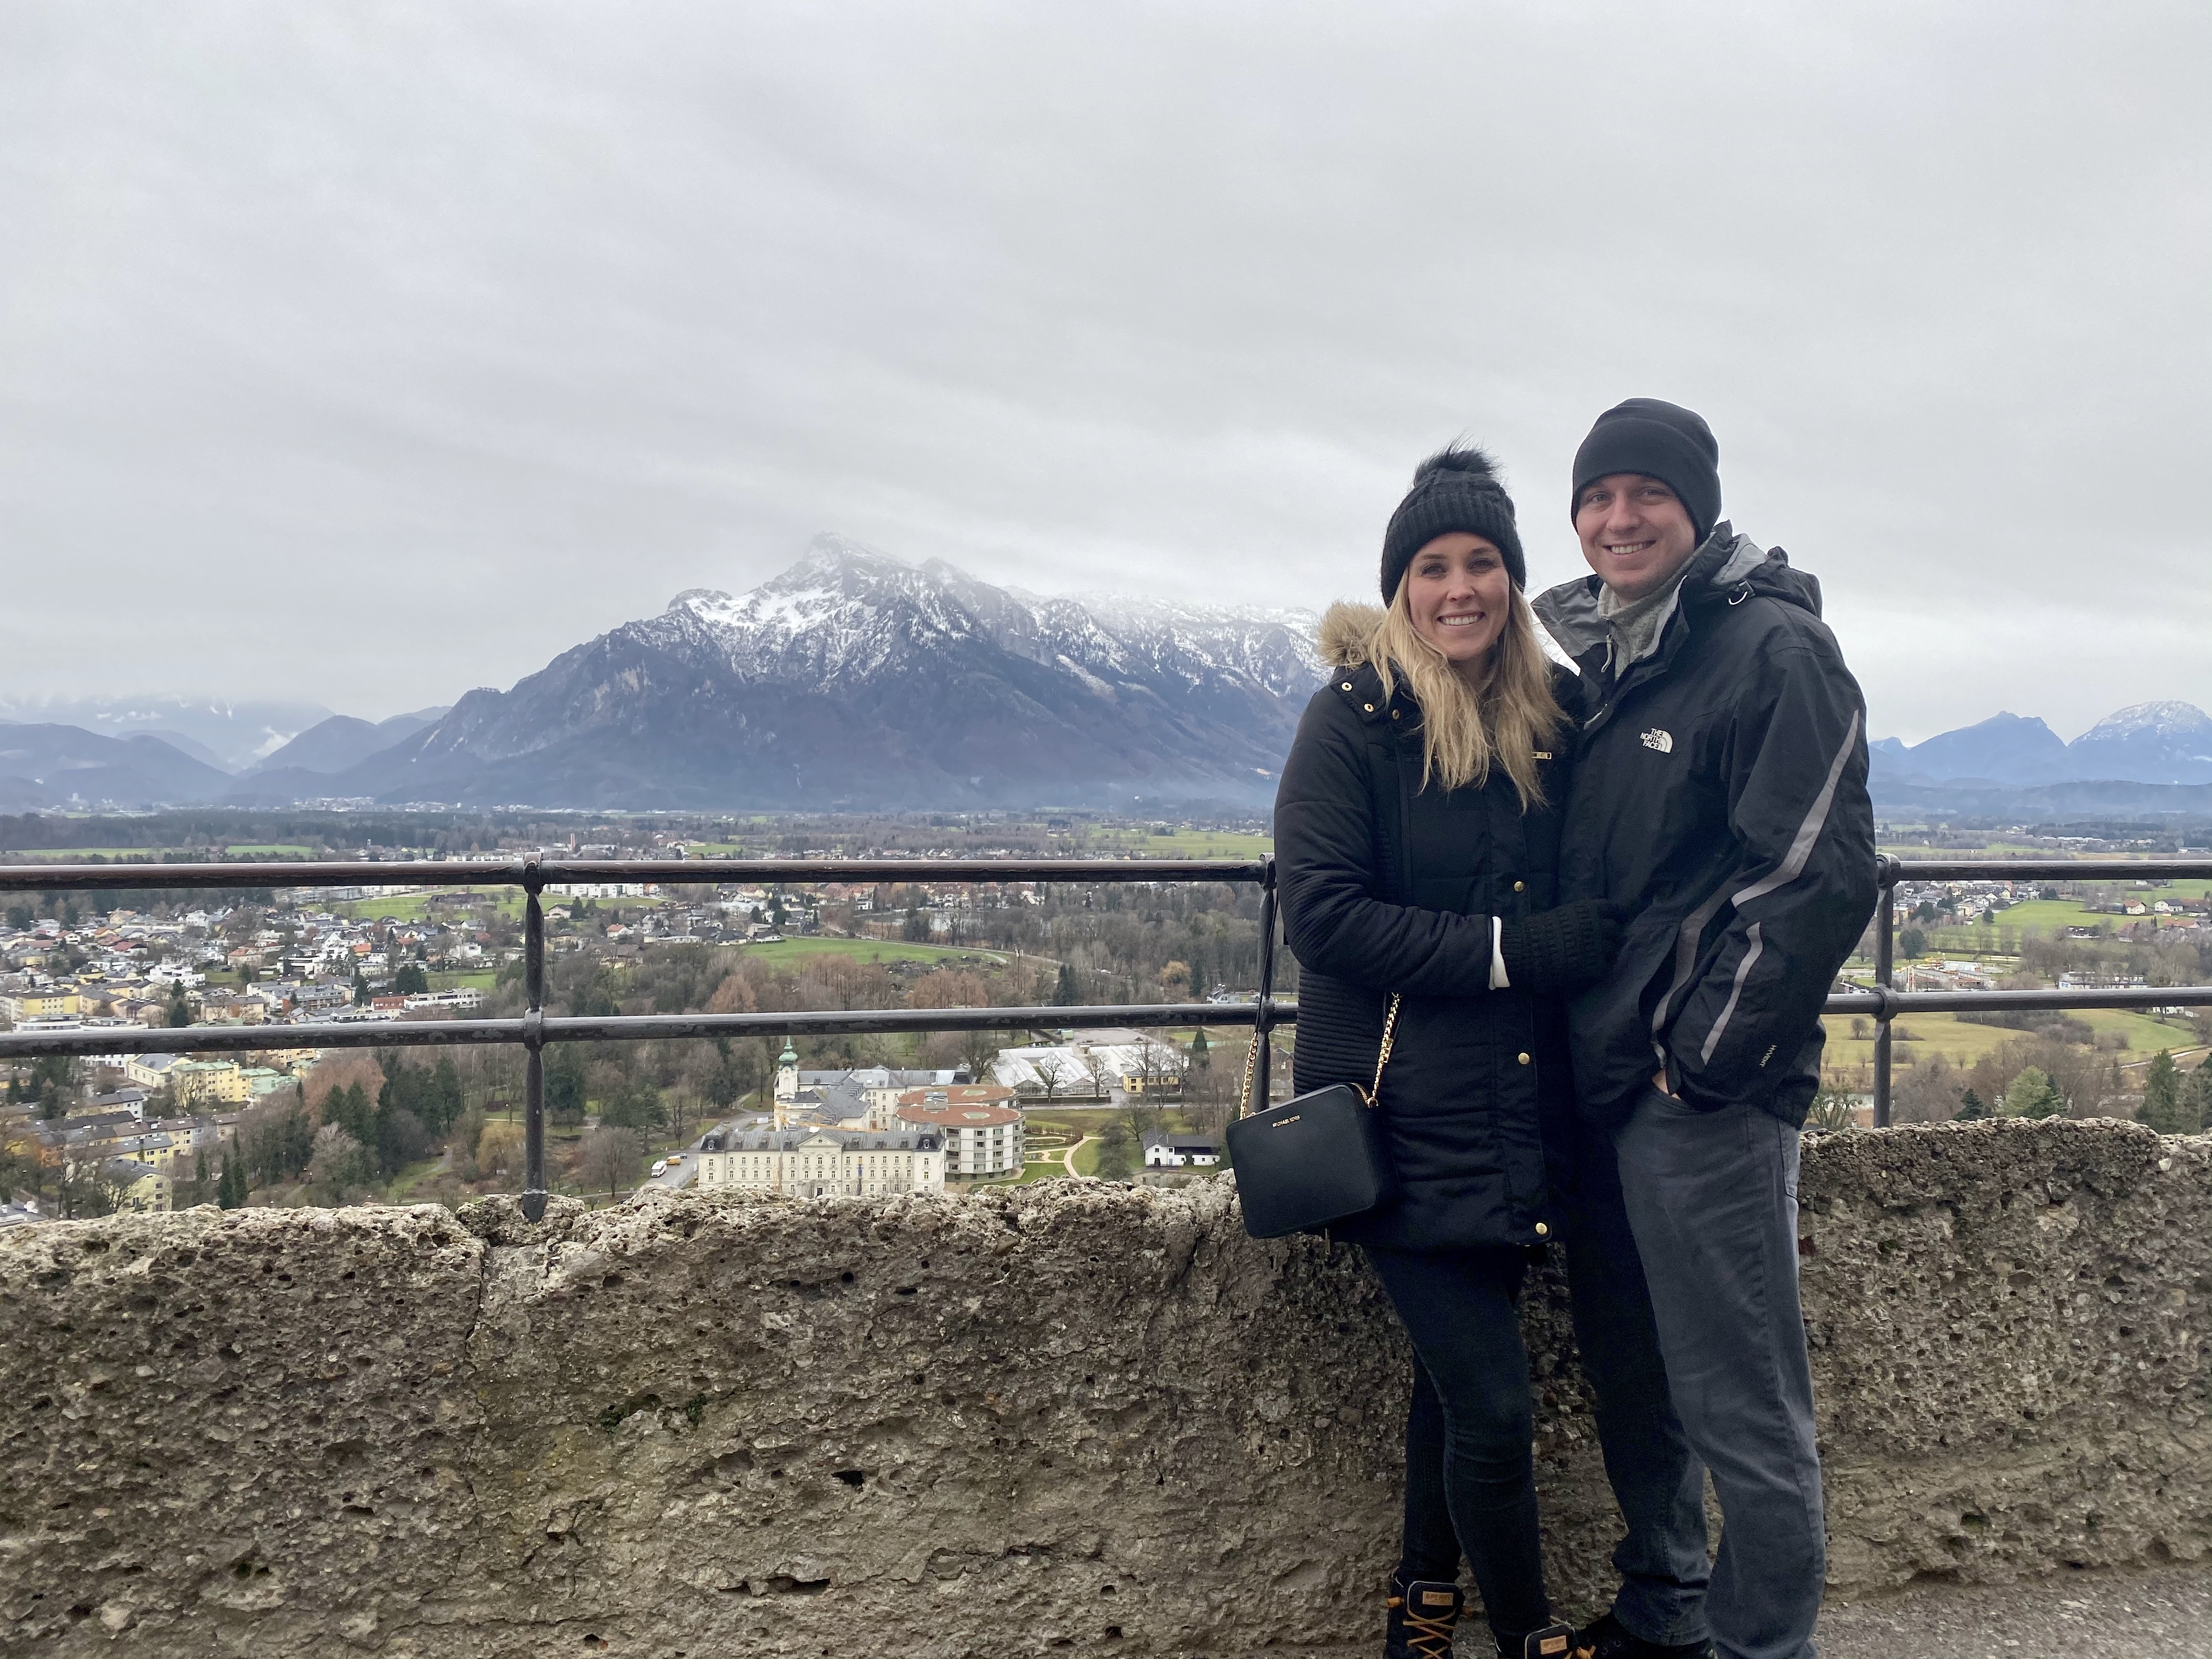 Erinn and Ben at Hohensalzburg Fortress with the Austrian alps in the background.